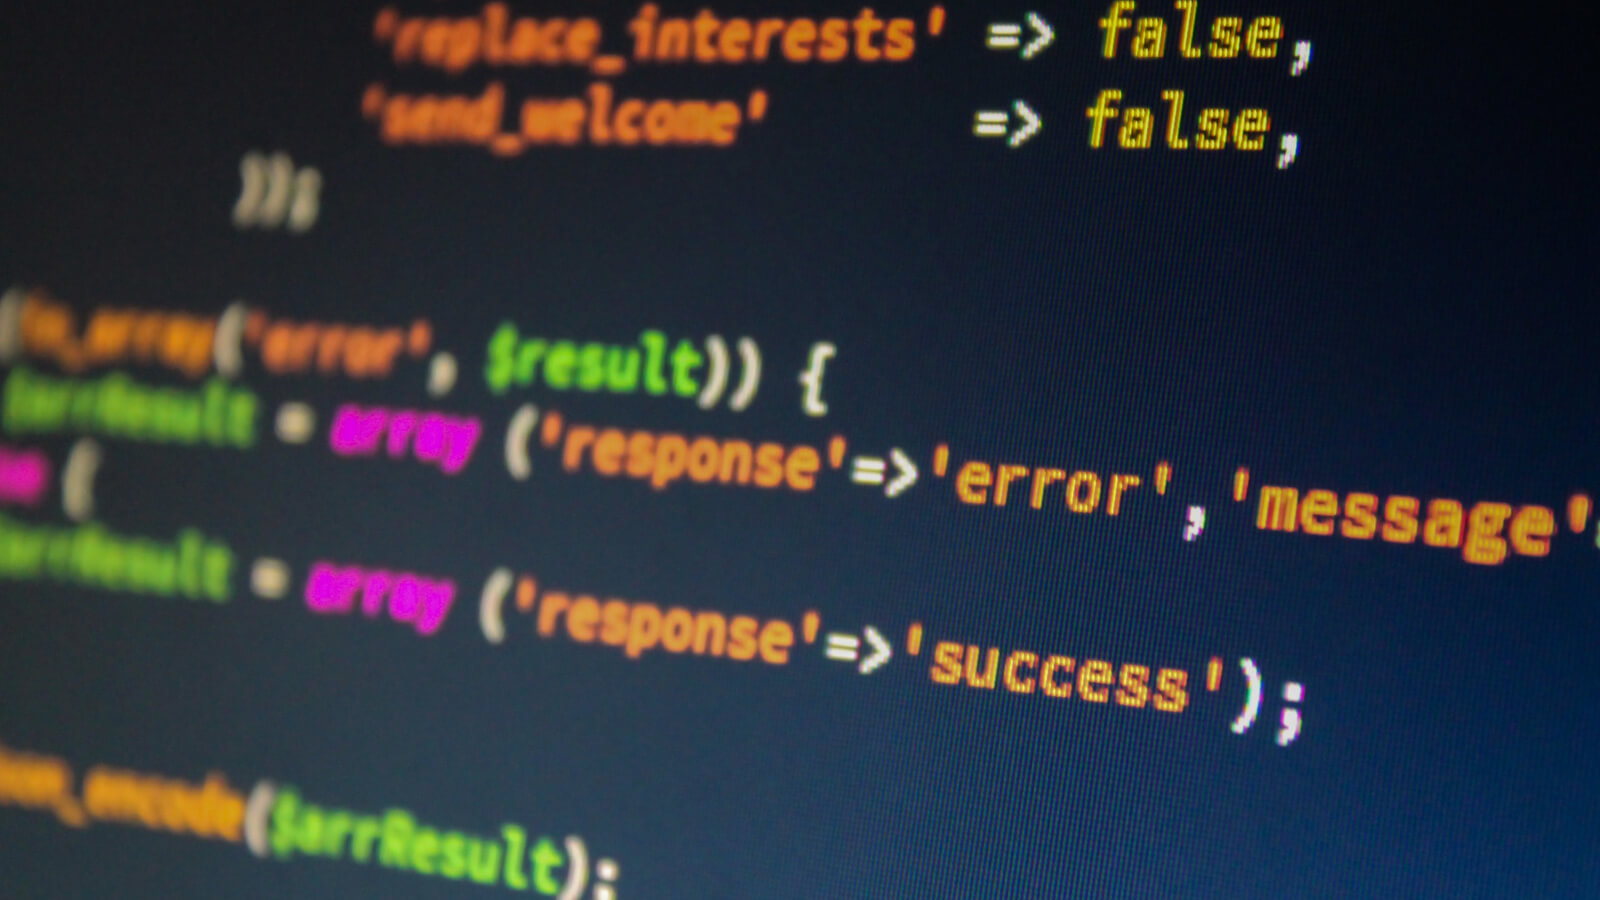 Coding: array, response, error, message, success...